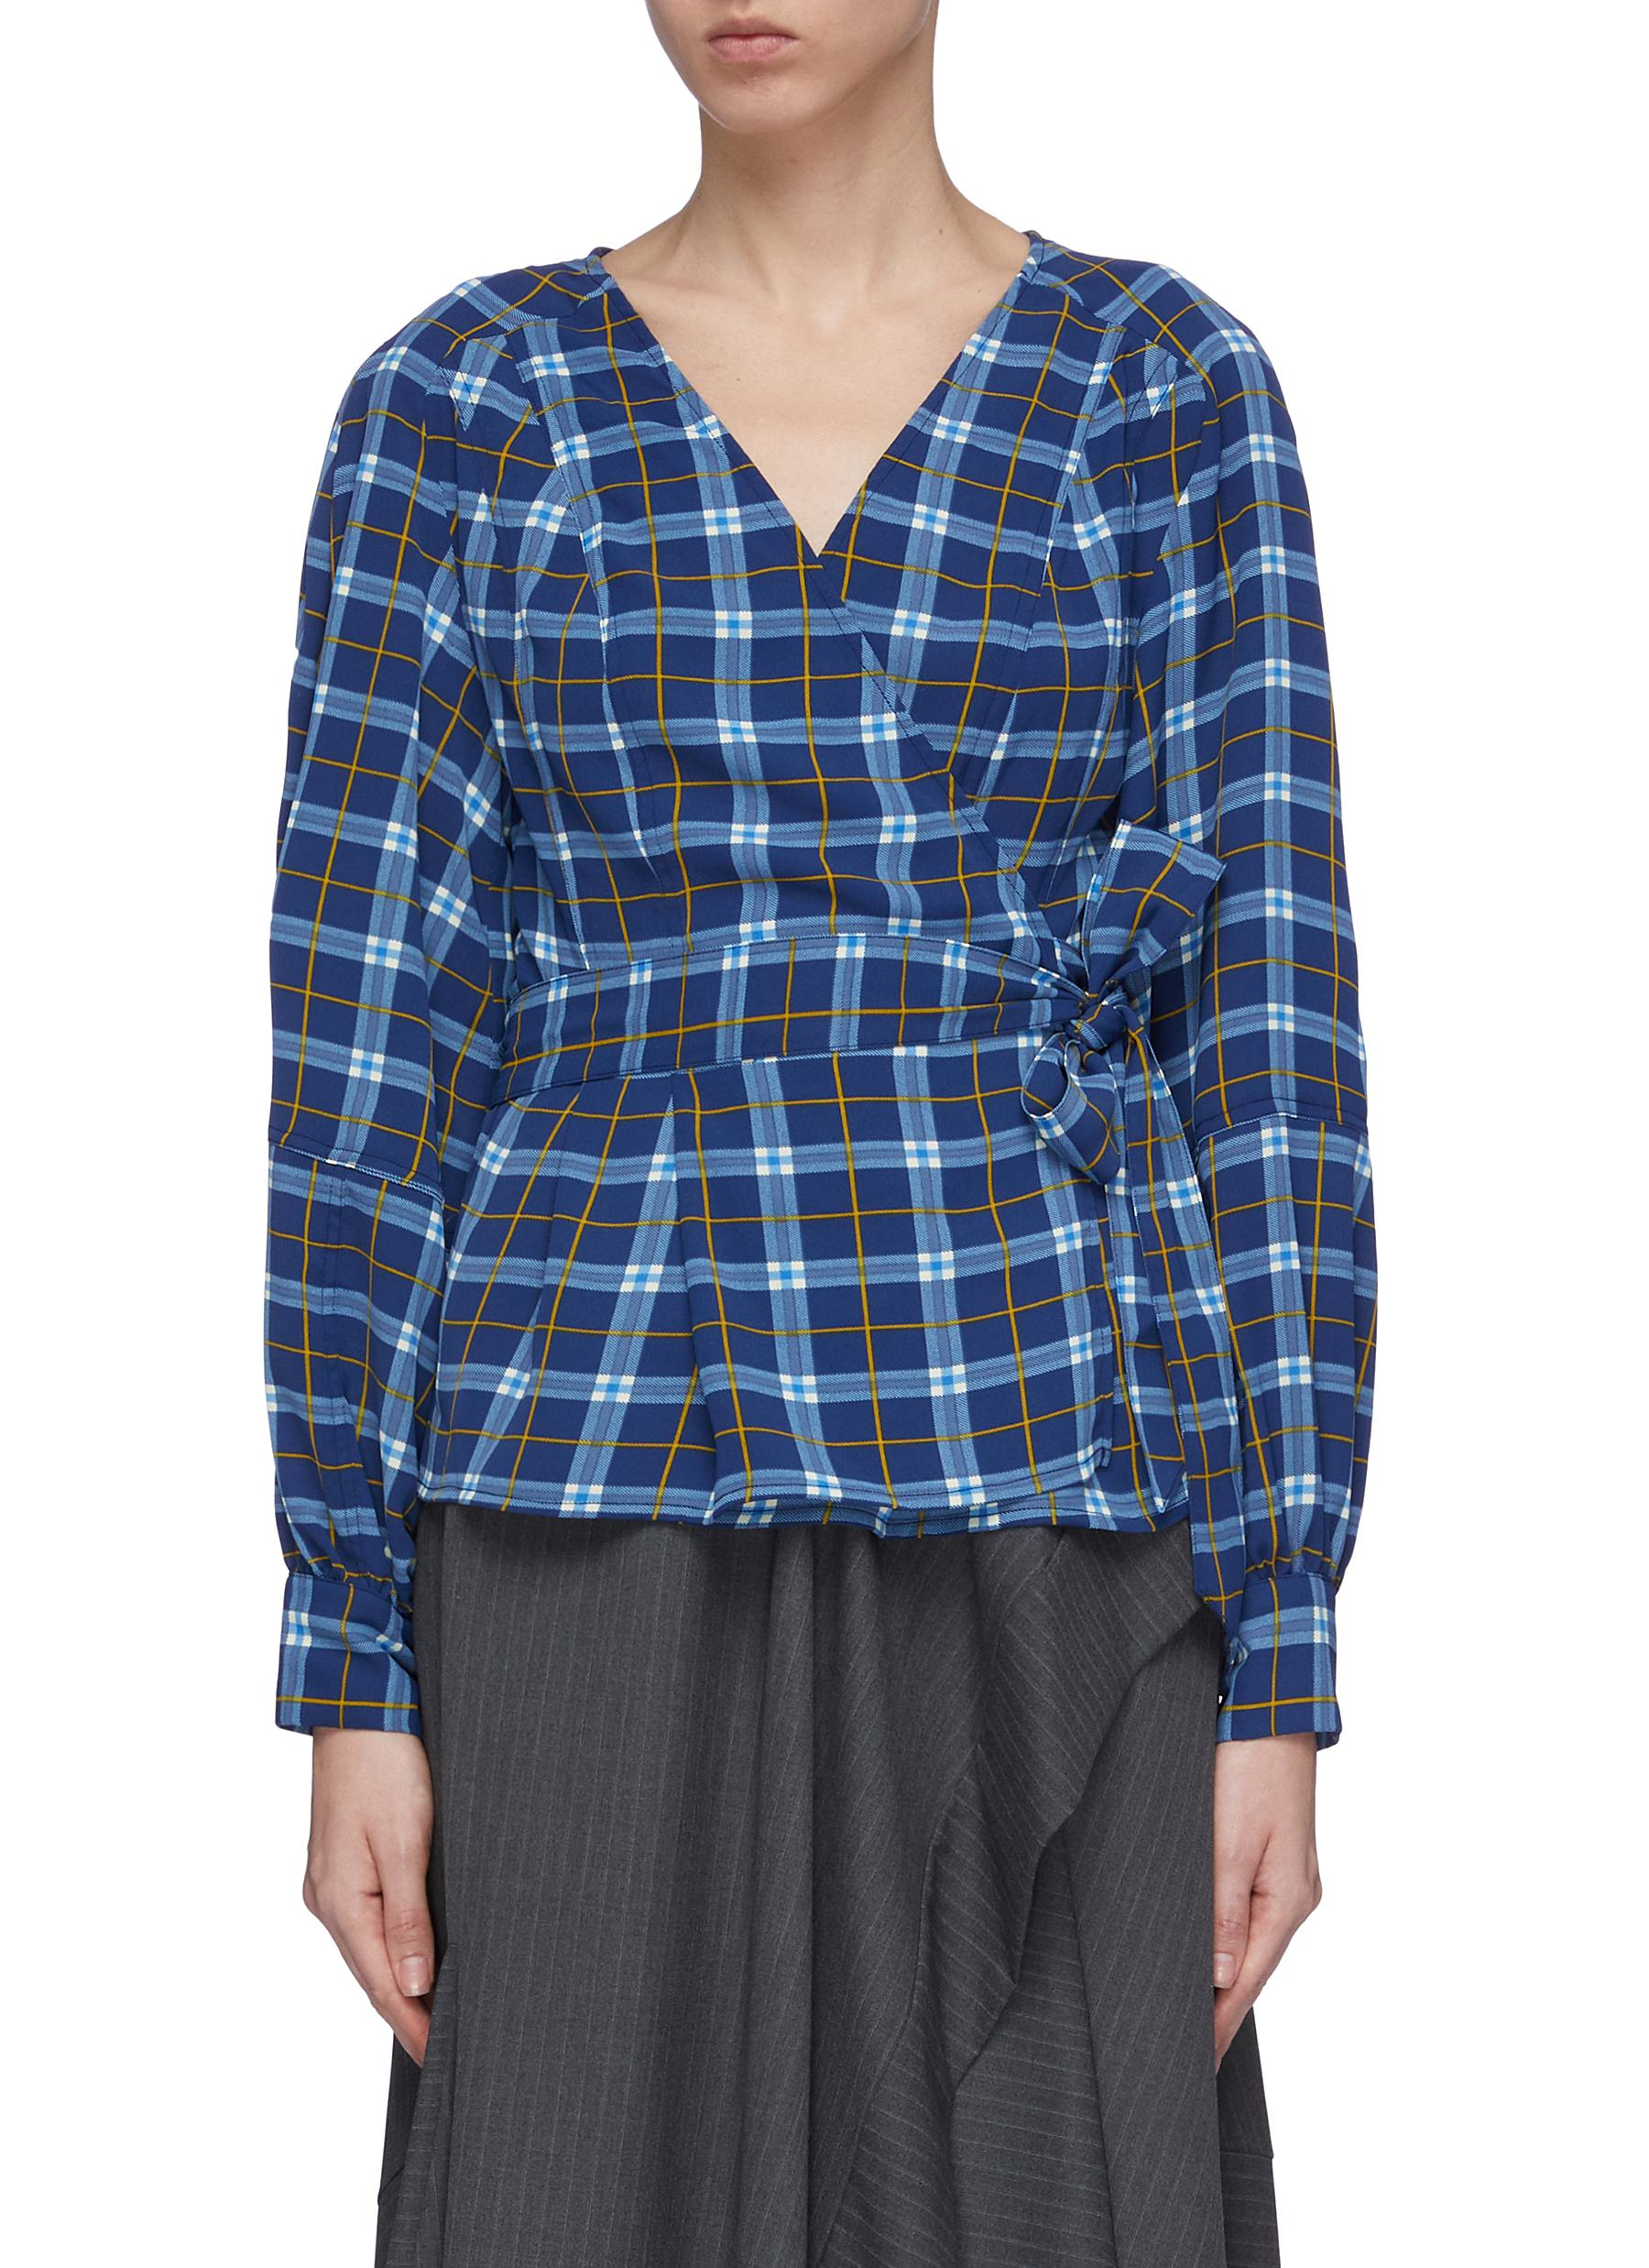 Define check plaid wrap top by C/Meo Collective